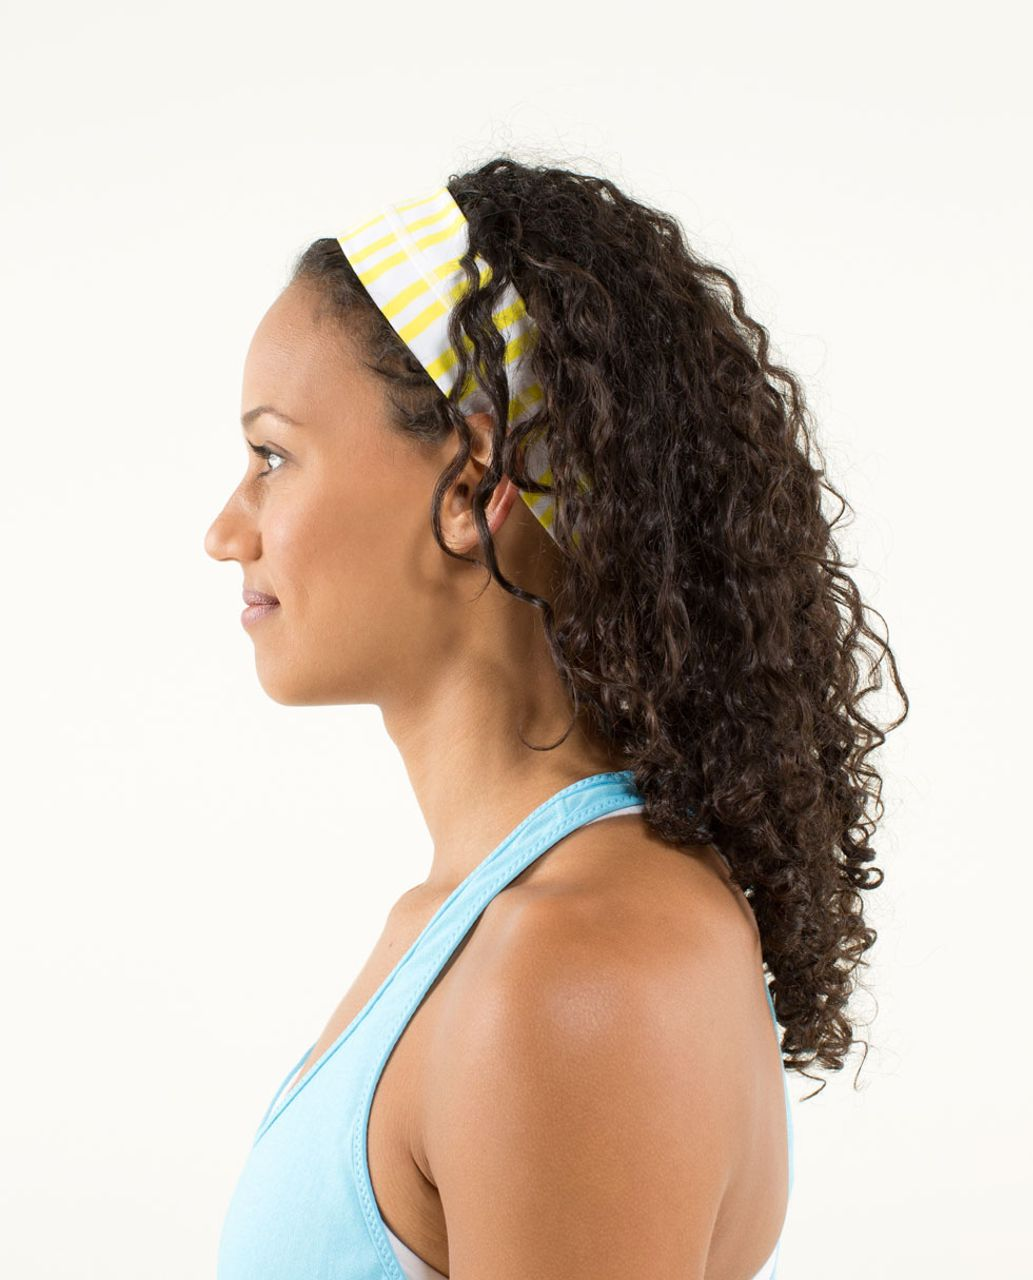 Lululemon Fly Away Tamer Headband - Twin Stripe Sizzle